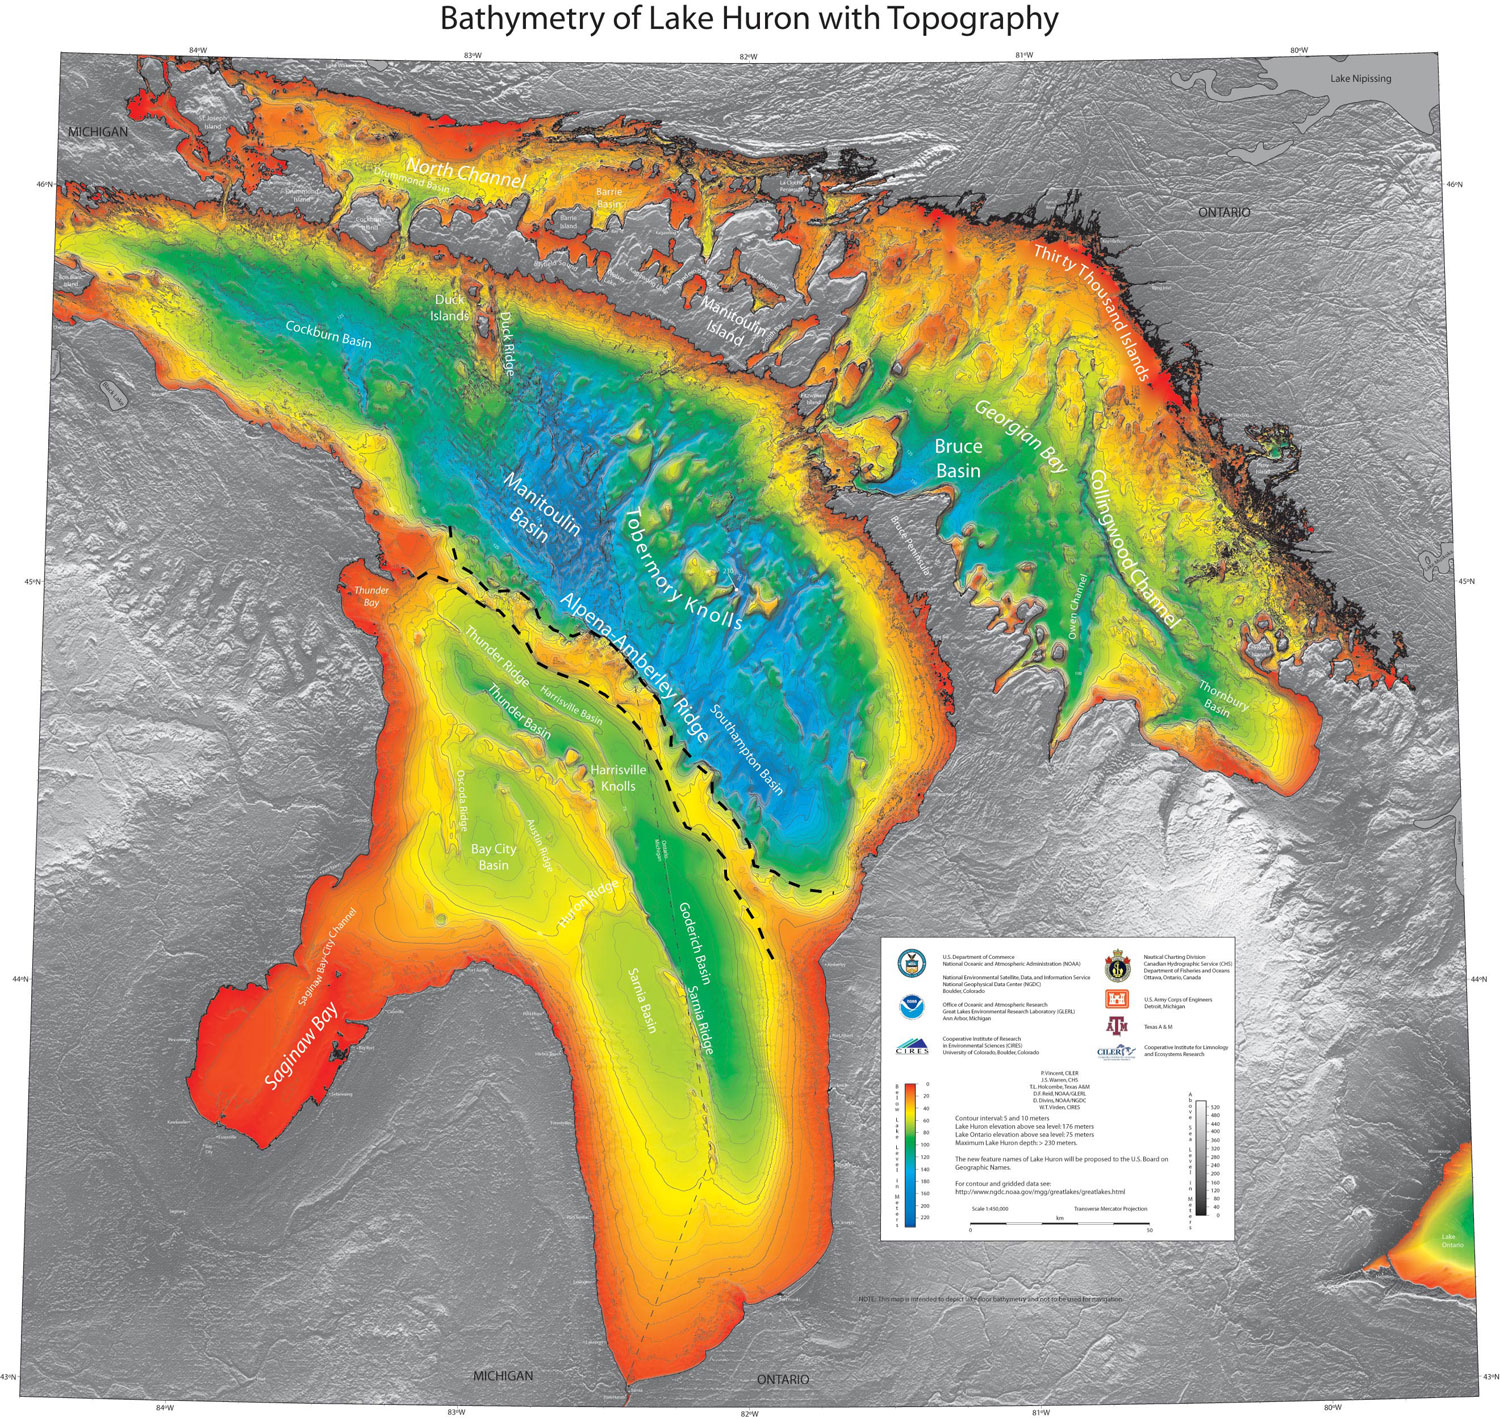 Figure 56. A bathymetry map of Lake Huron showing the Alpena-Amberley Ridge, which once connected Michigan with Canada. University of Michigan anthropologists are searching the area for prehistoric archaeological sites.